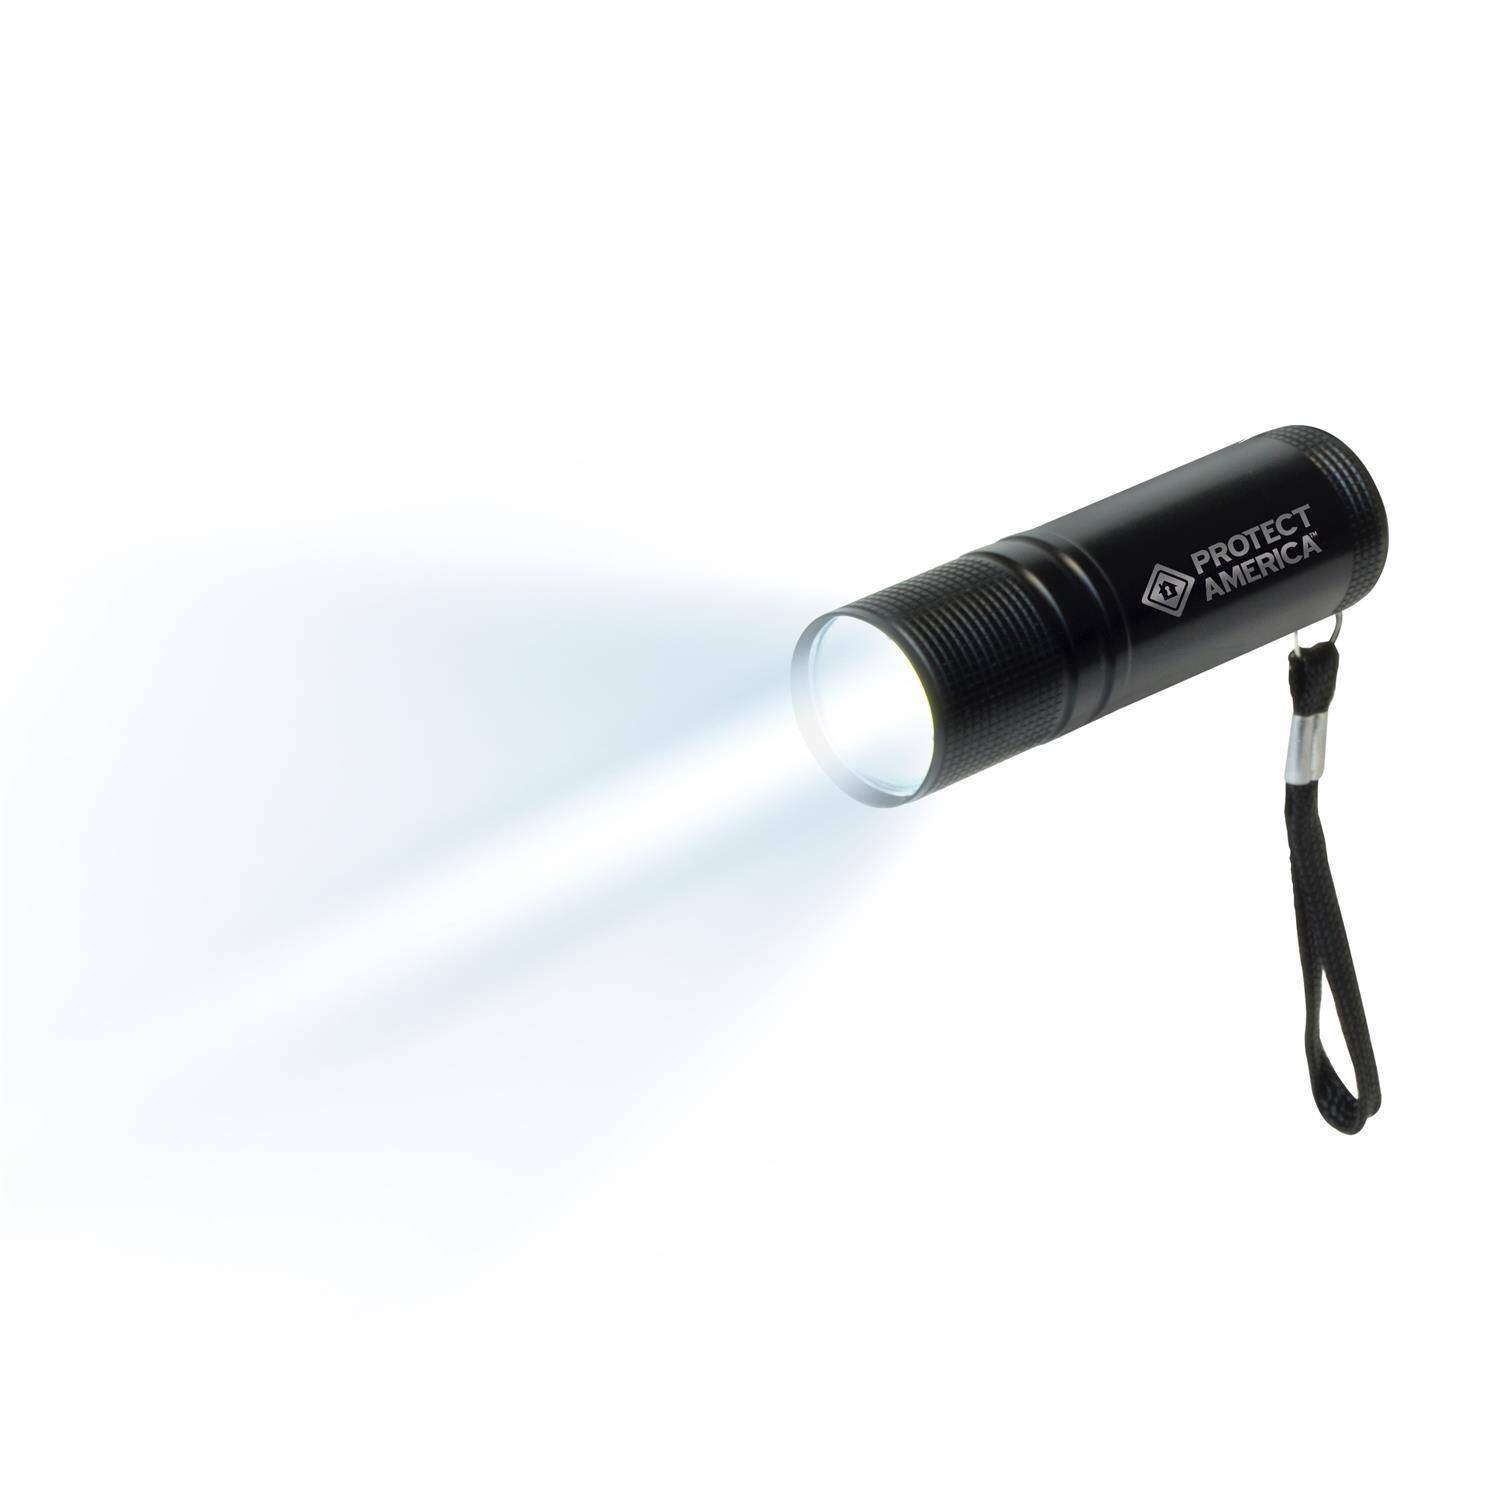 2957 - COB Vanguard Flashlight